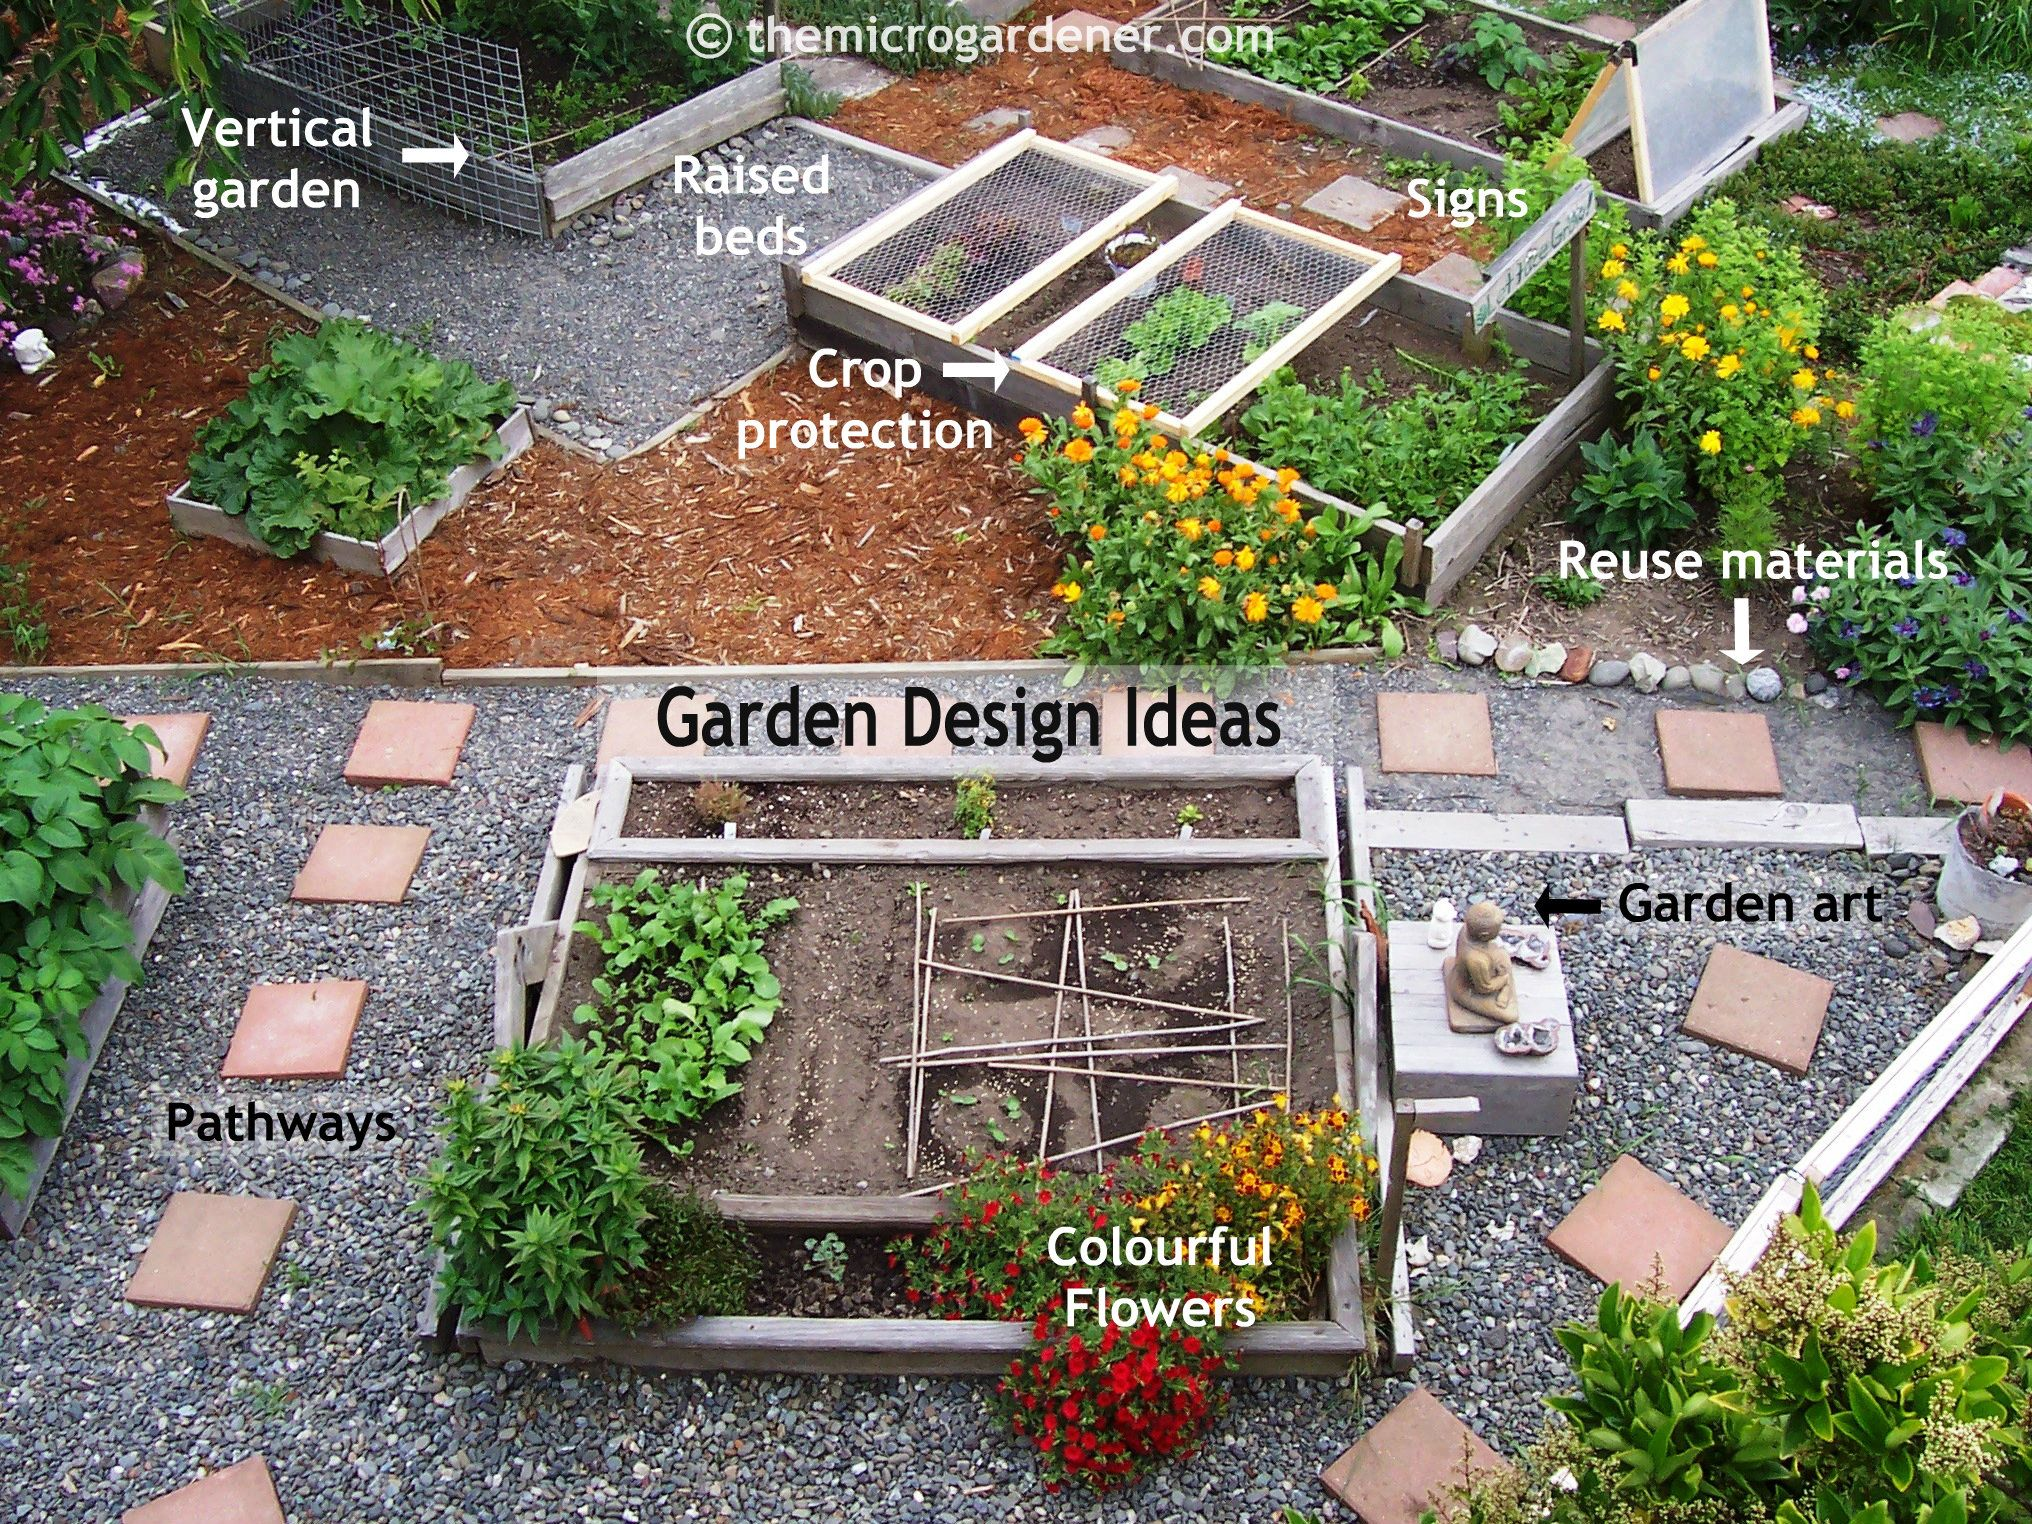 Small garden design ideas on pinterest vertical gardens for Small house garden design